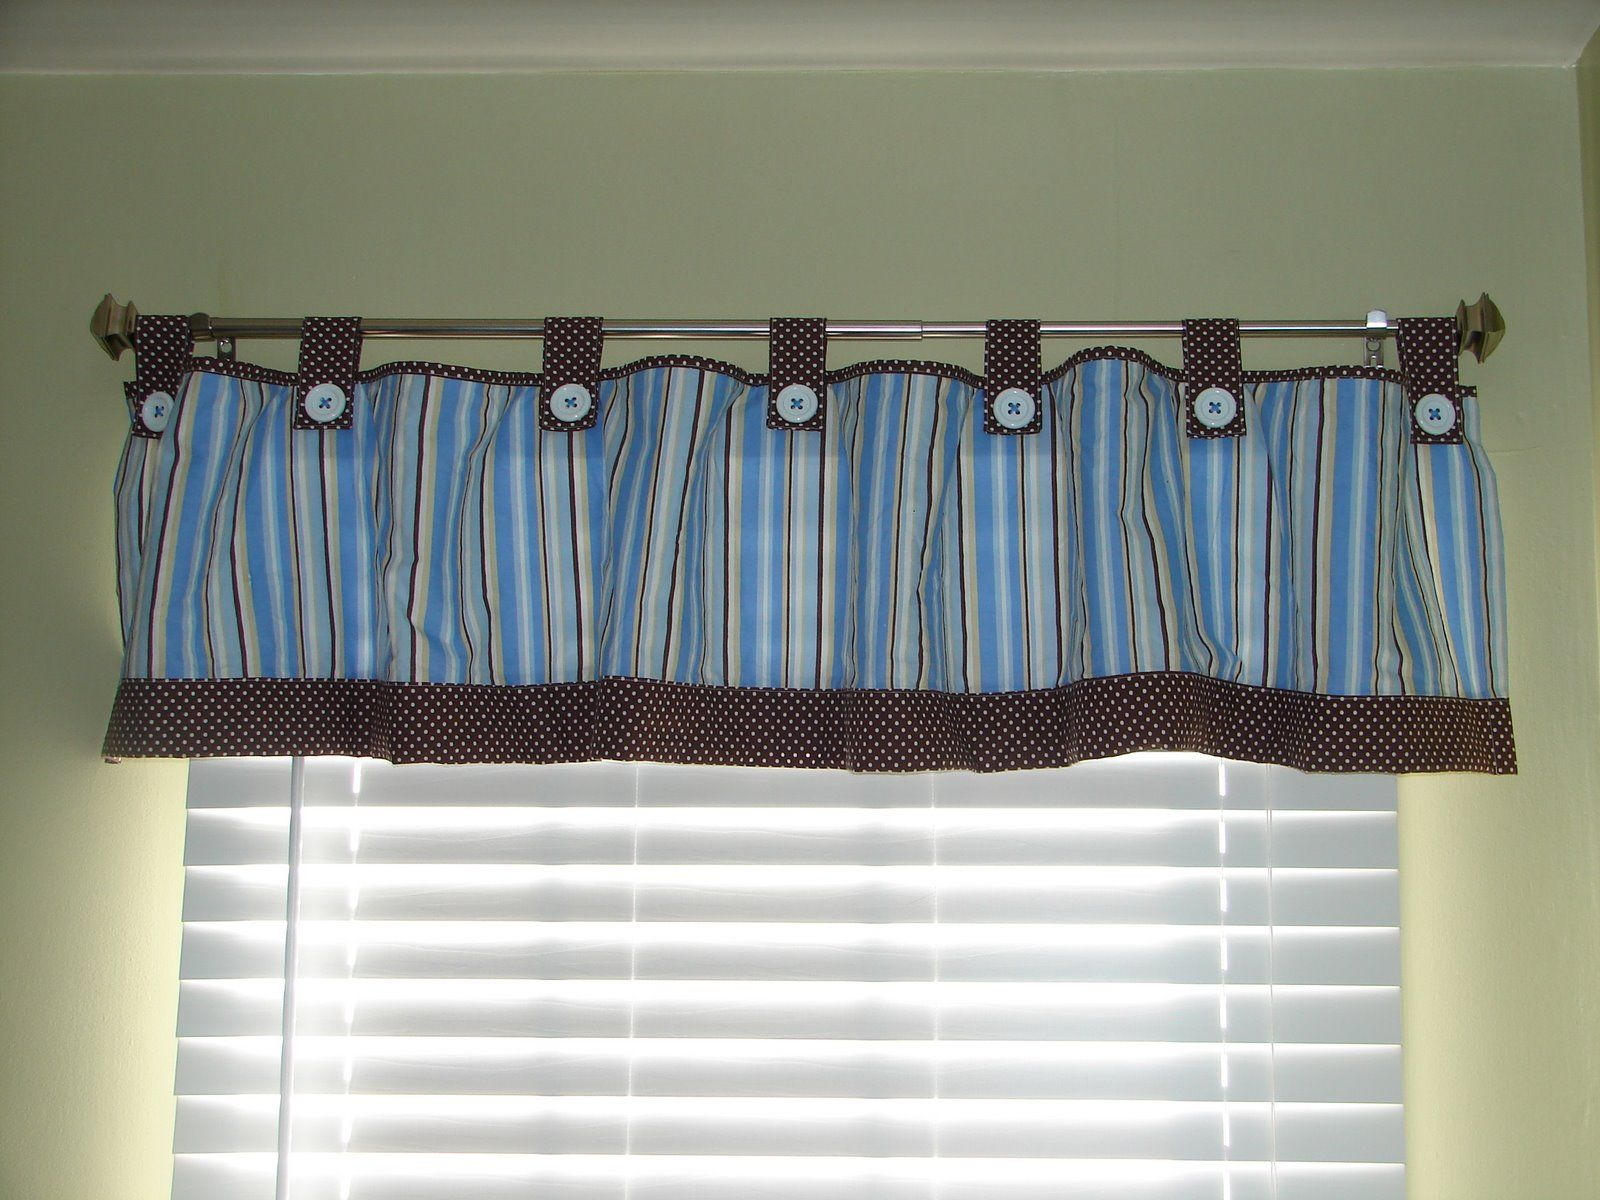 Valance | Baby Room Curtains, Nursery Valance, Boys Room Curtains